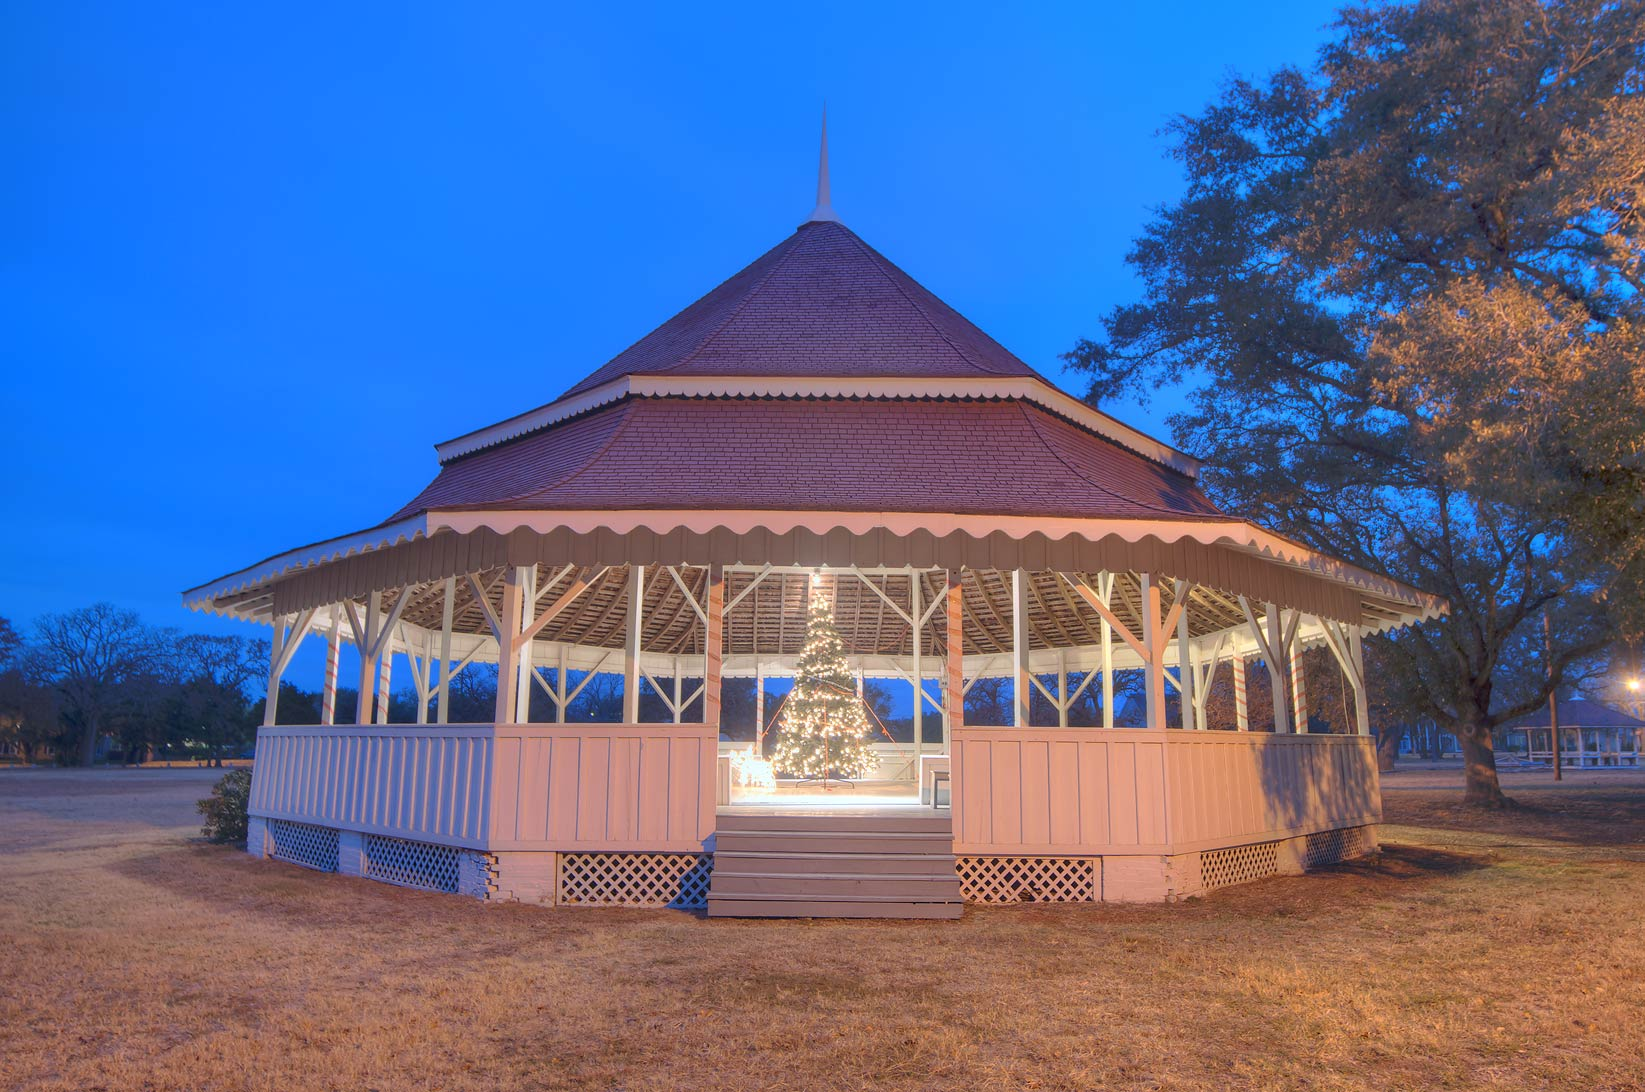 Gazebo-style octogonal bandstand (1895) (Karen...Park at early morning. Calvert, Texas